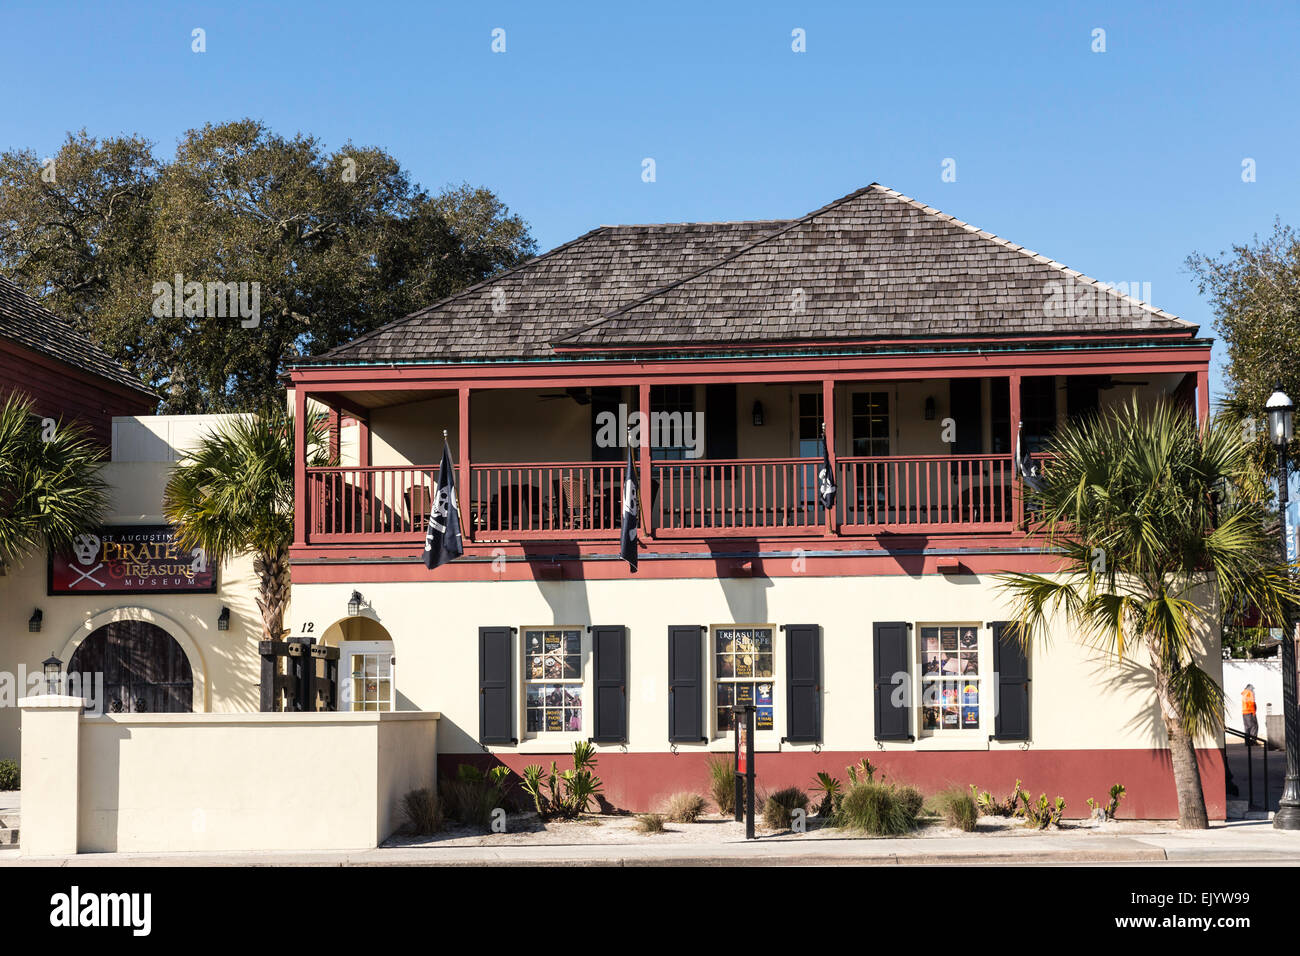 Good Day Sunshine Old Florida Village : St augustine pirate treasure museum old town